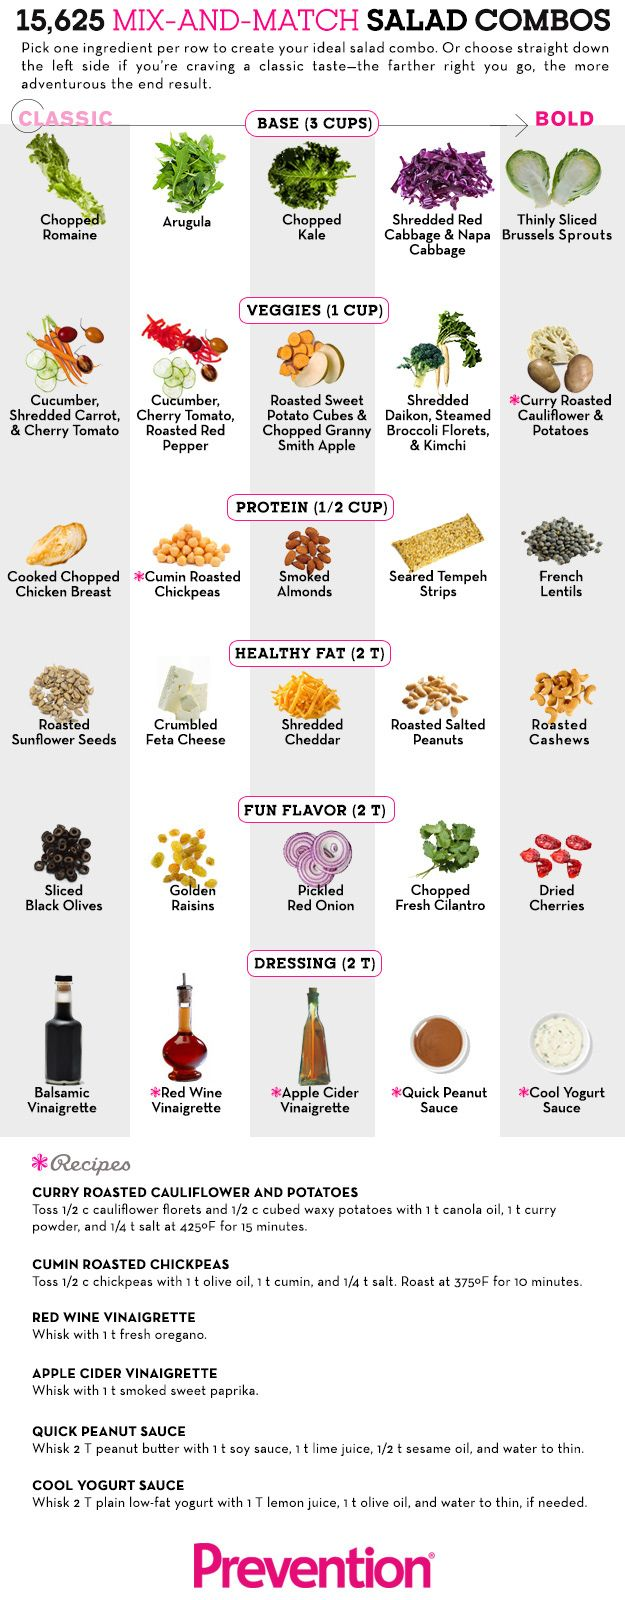 Healthy Eating | DIY Salad Recipes by Homemade Recipes at http://homemaderecipes.com/healthy/healthy-eating-diagrams